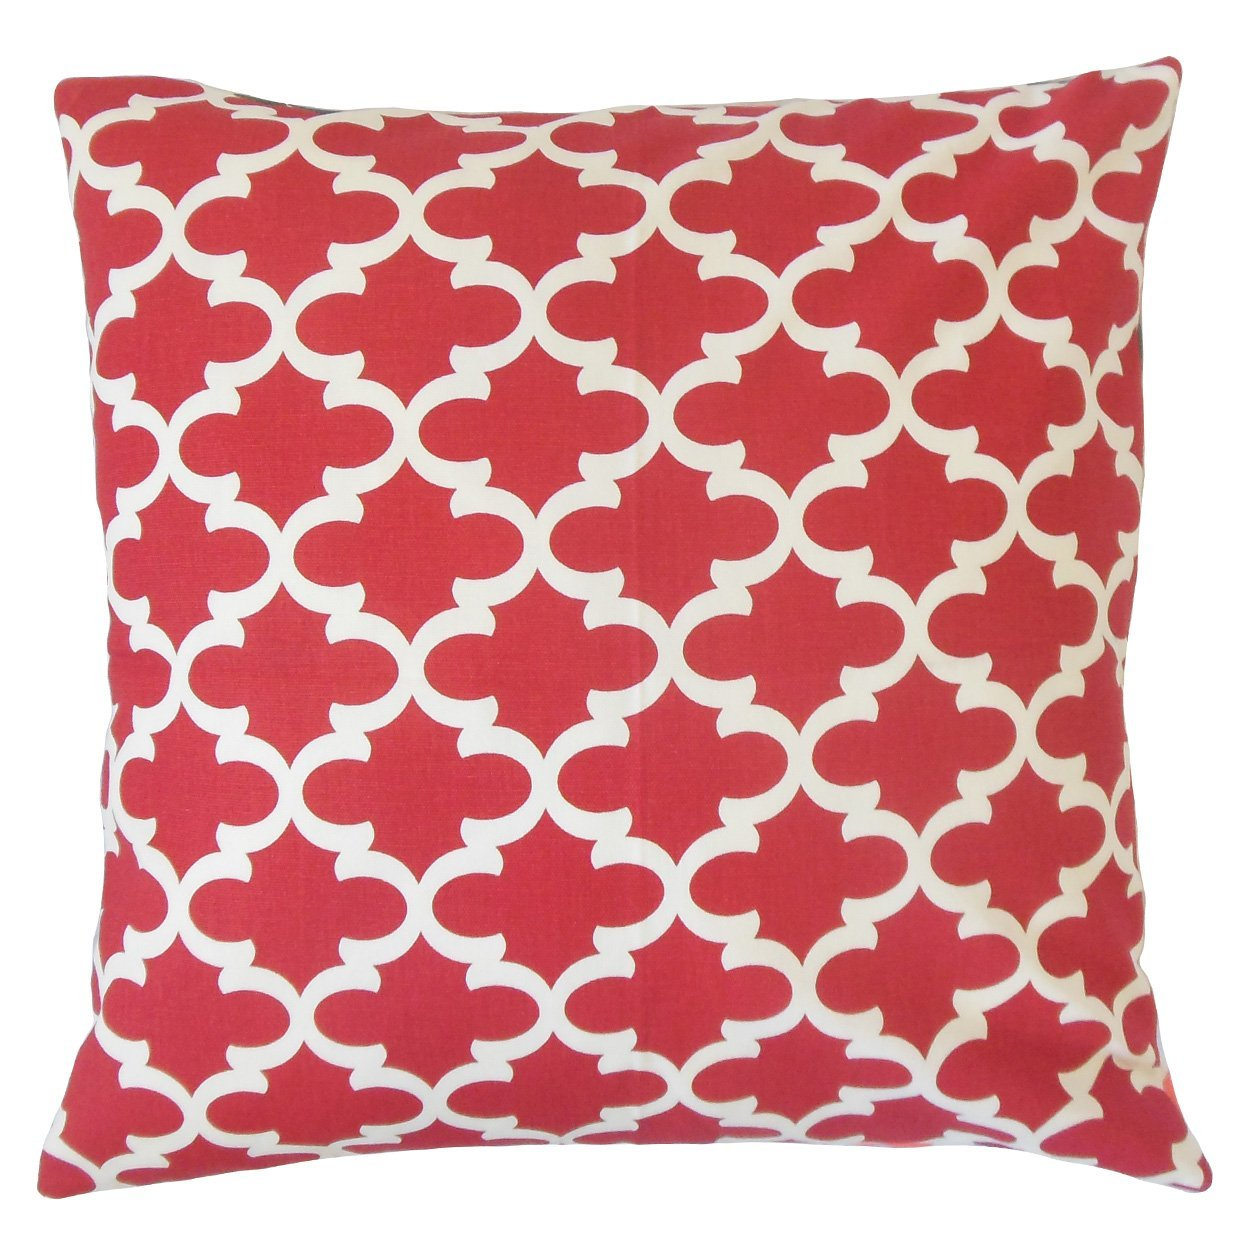 The Pillow Collection Vilayna Geometric Bedding Sham Red Queen//20 x 30